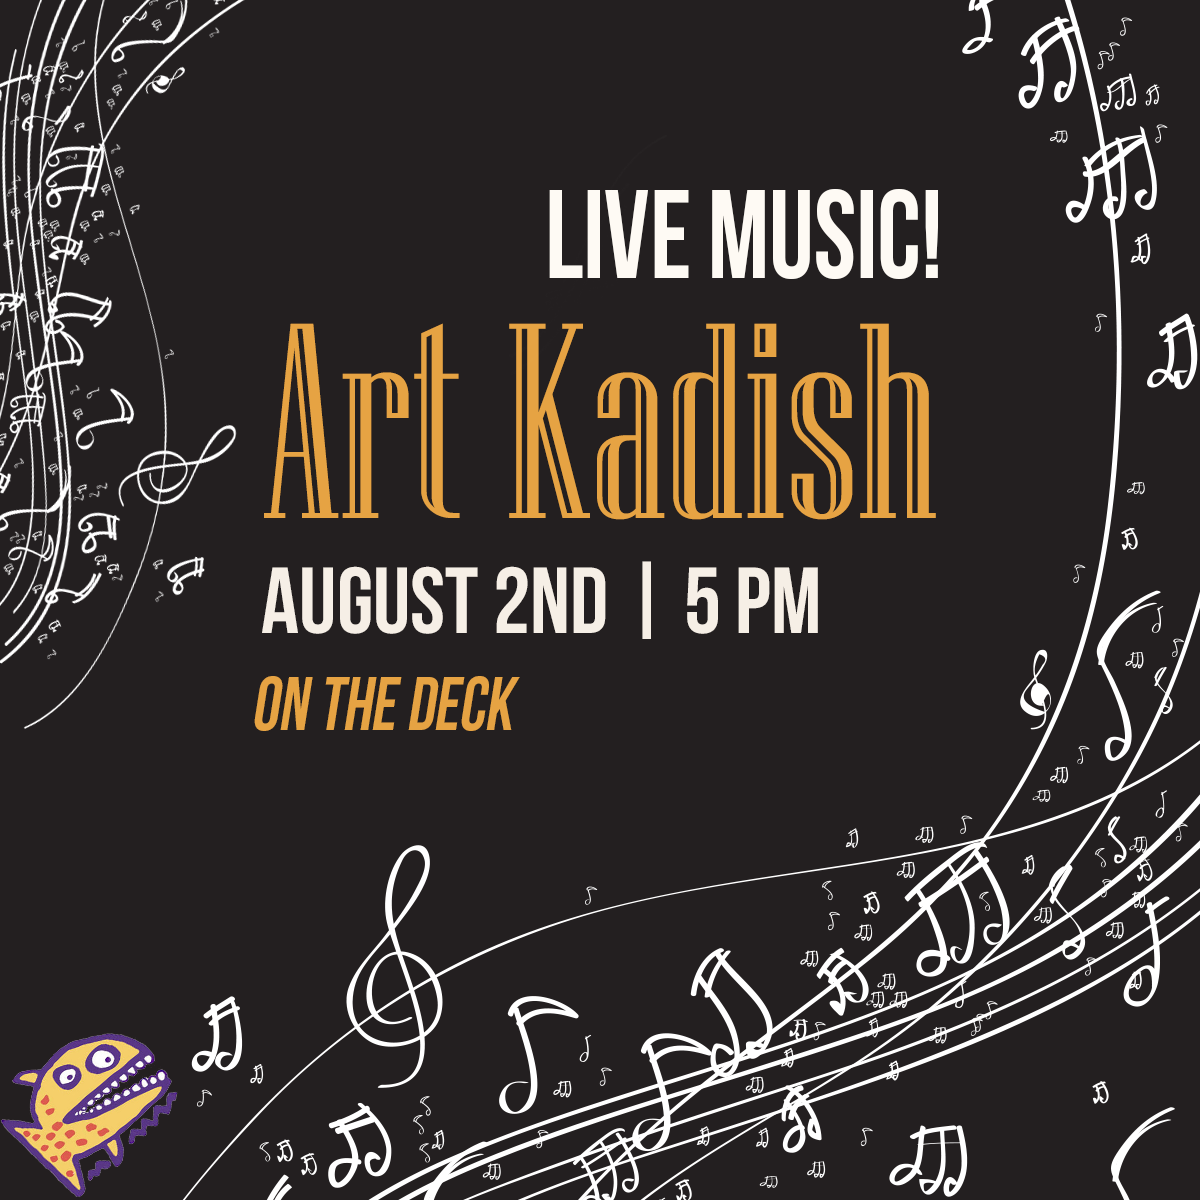 Art Kadish - August 2nd at 5 pm on the deck